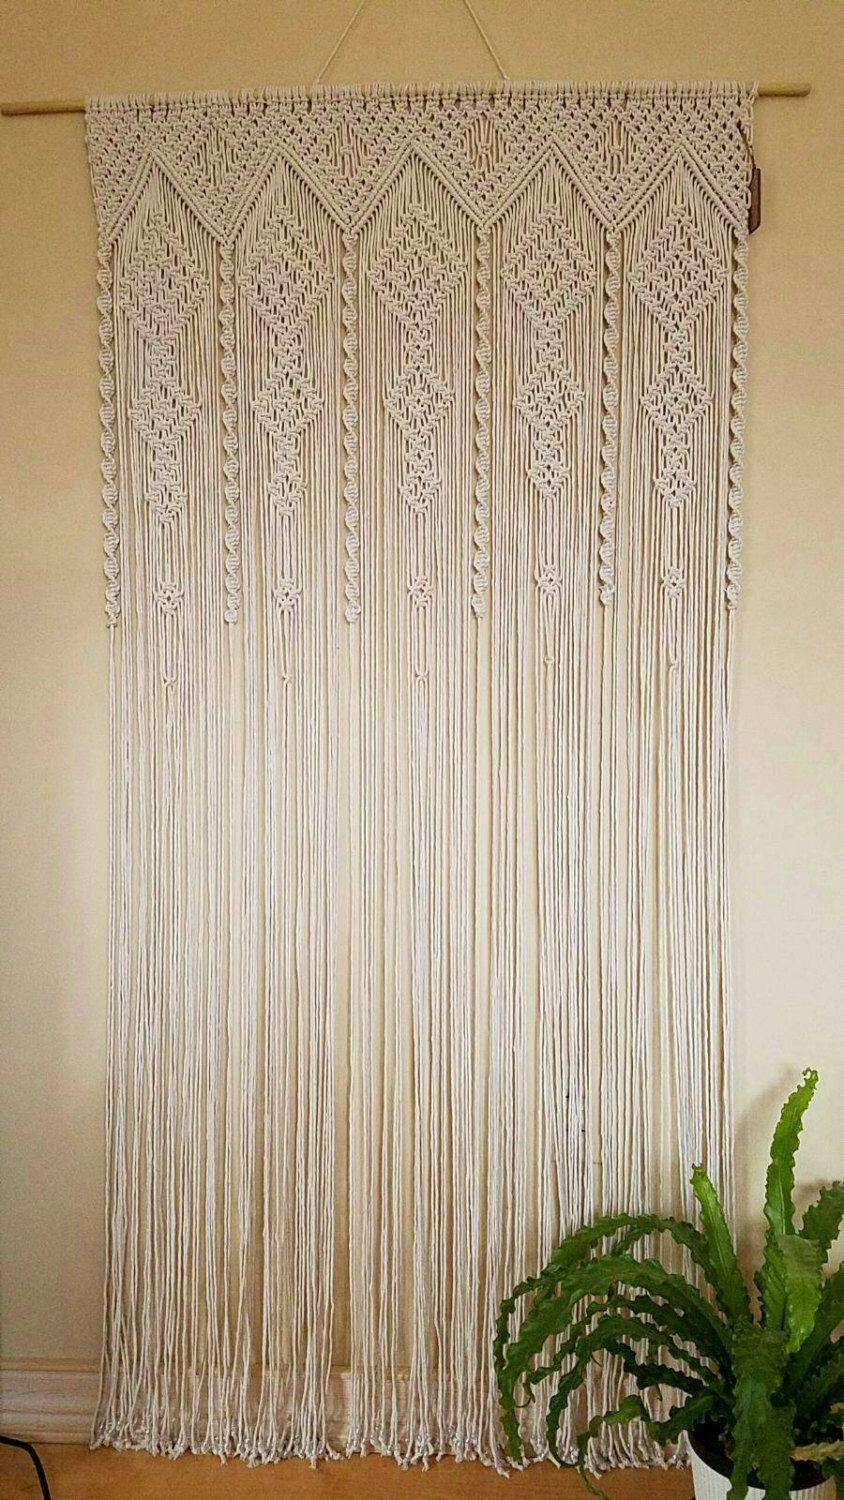 Macrame Curtain Room Divider Door Curtain Retro Wall Hanging Boho Chic Retro Living By Studiosenb Macrame Door Curtain Macrame Wedding Backdrop Macrame Curtain